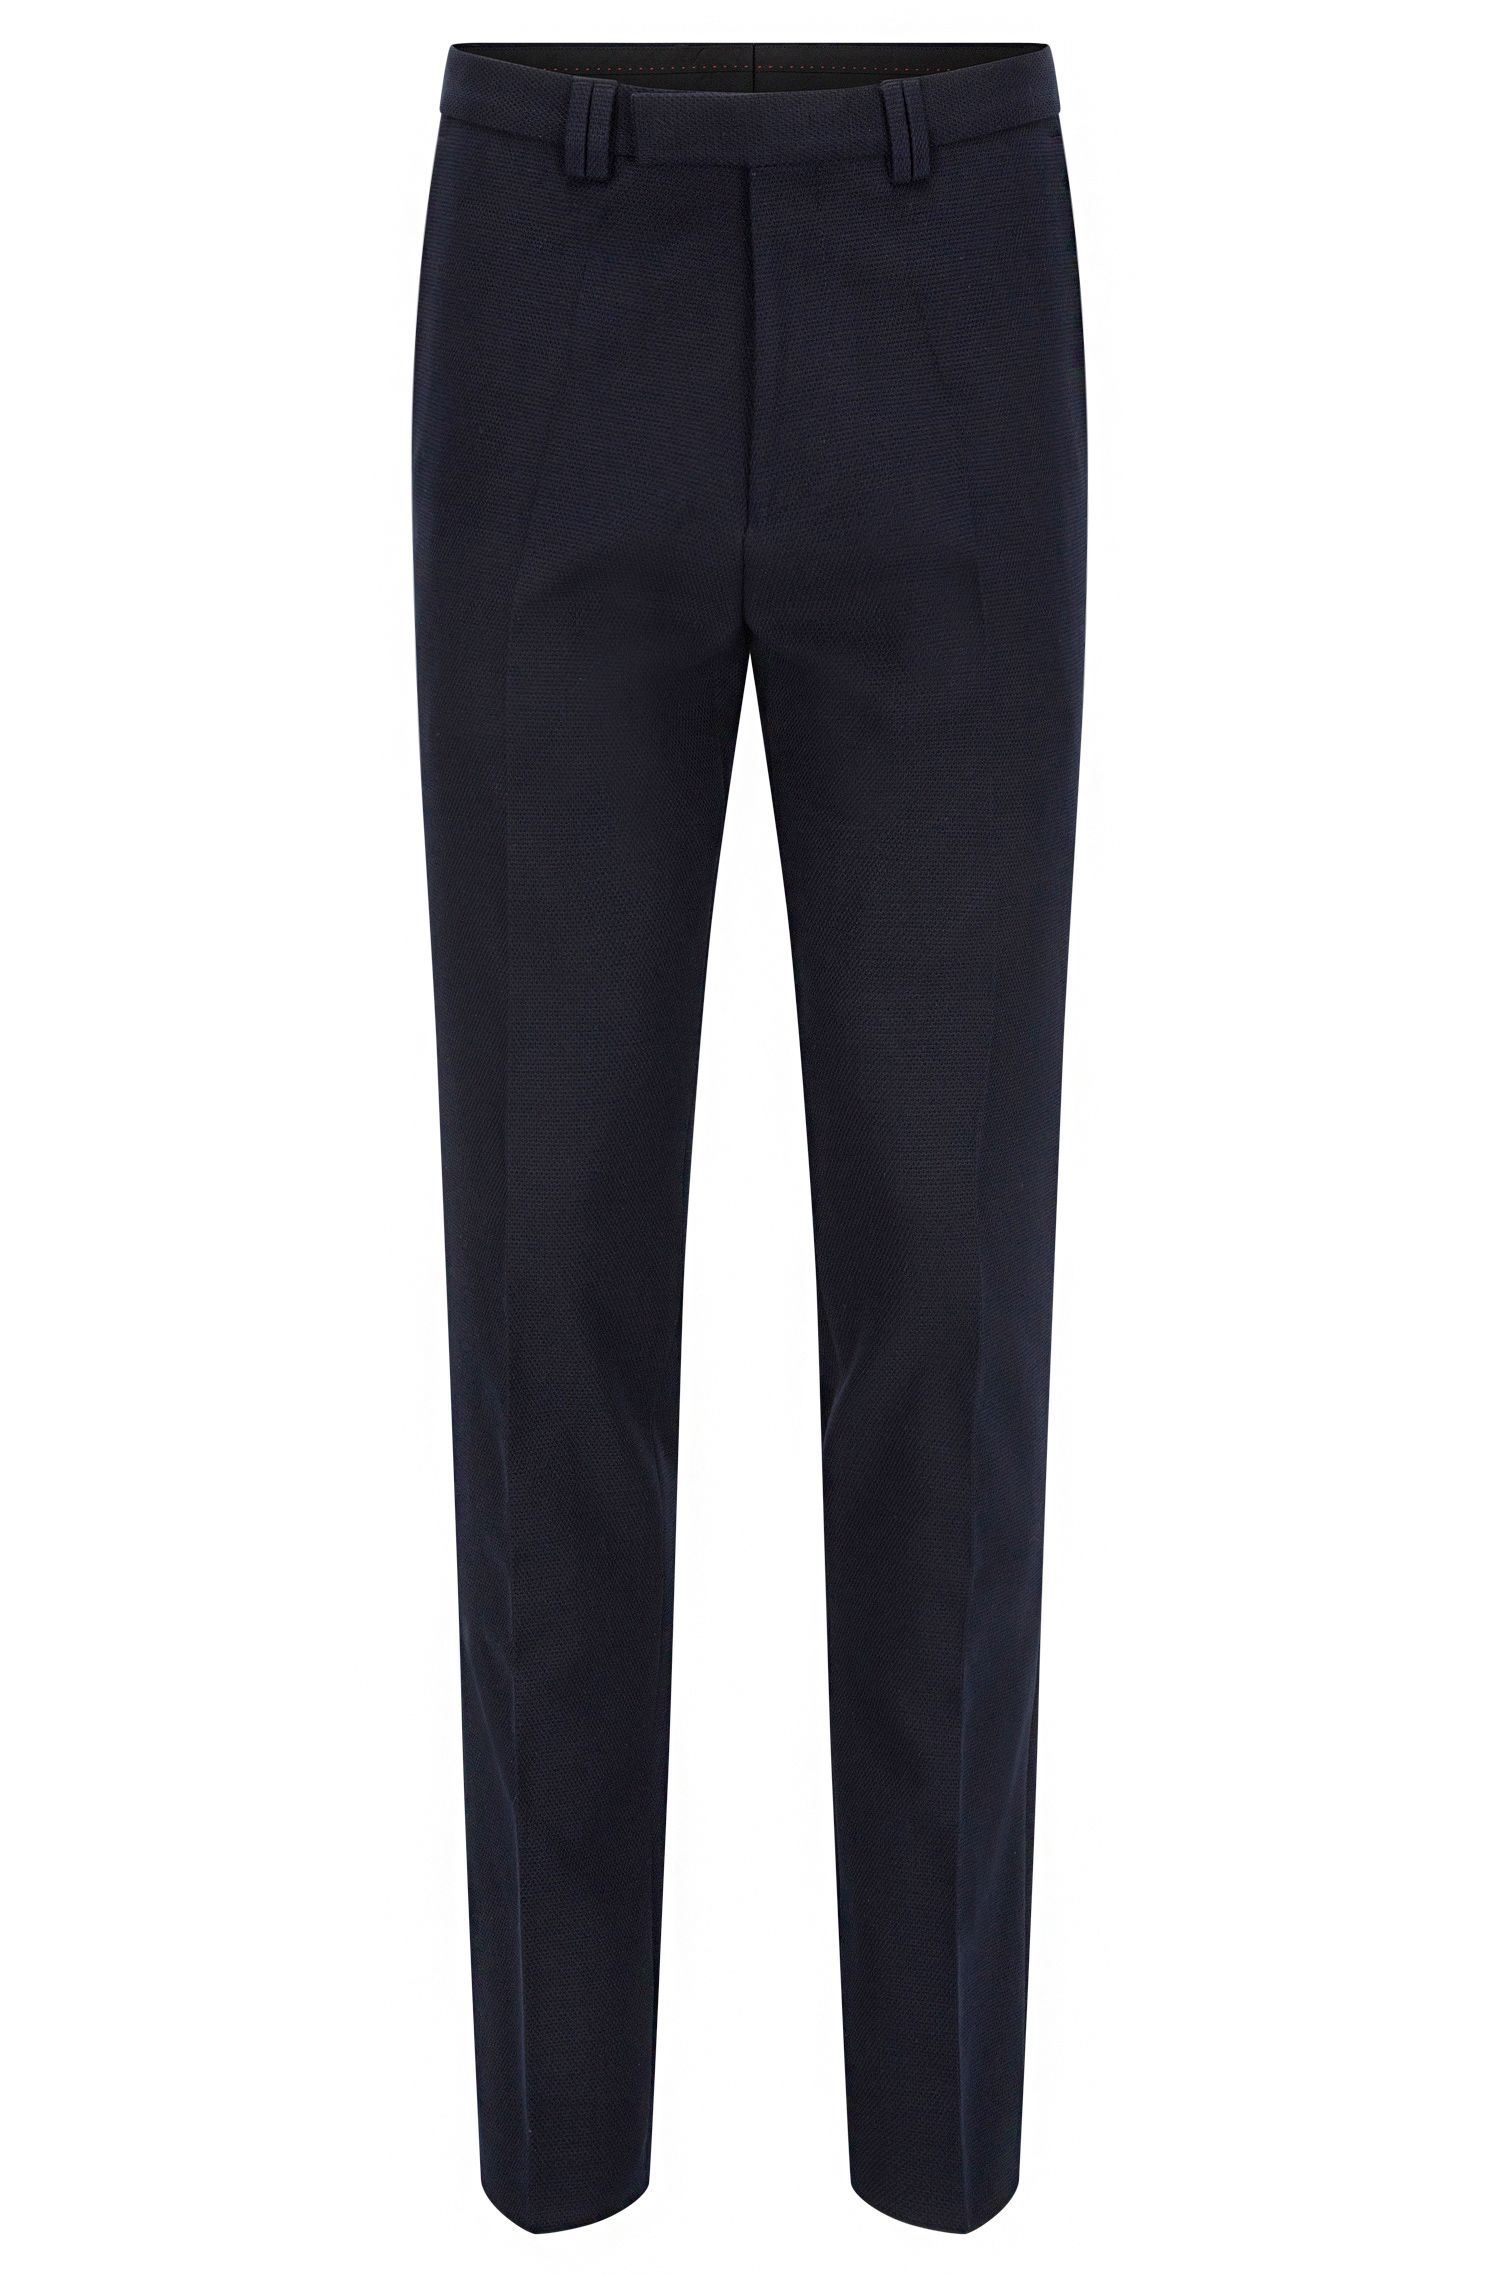 Pantalon Extra Slim Fit en coton stretch gaufré